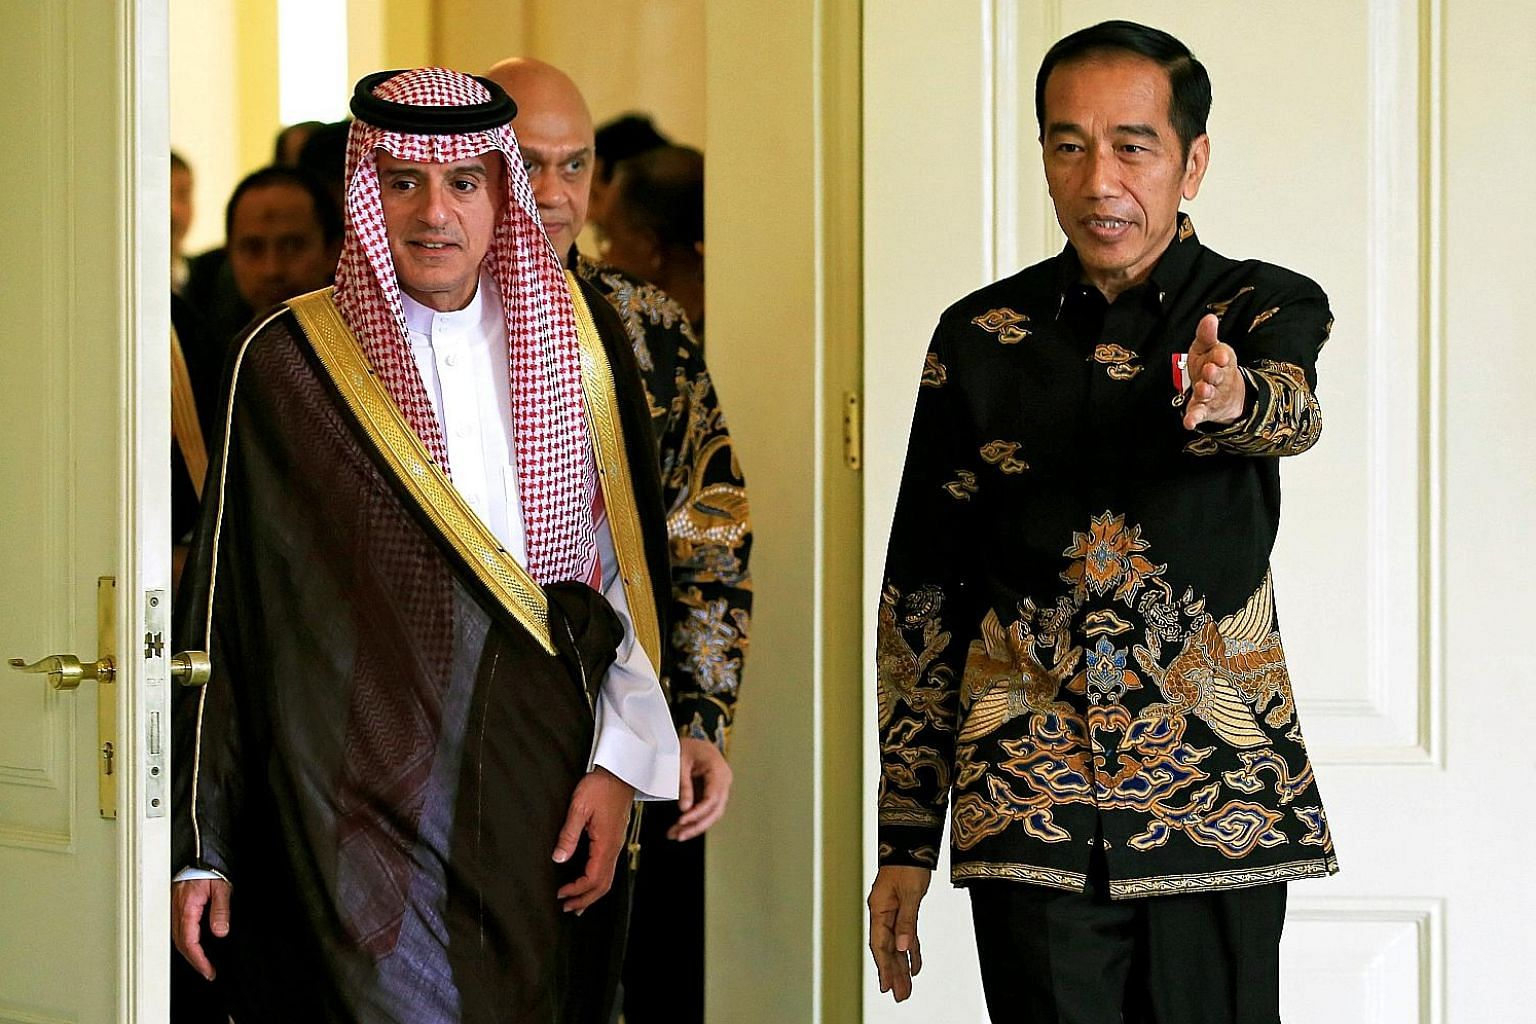 Indonesian President Joko Widodo welcoming Saudi Foreign Minister Adel al-Jubeir to the presidential palace in Bogor, West Java, yesterday. Mr al-Jubeir's visit is a follow-up to that of Saudi King Salman in March last year.